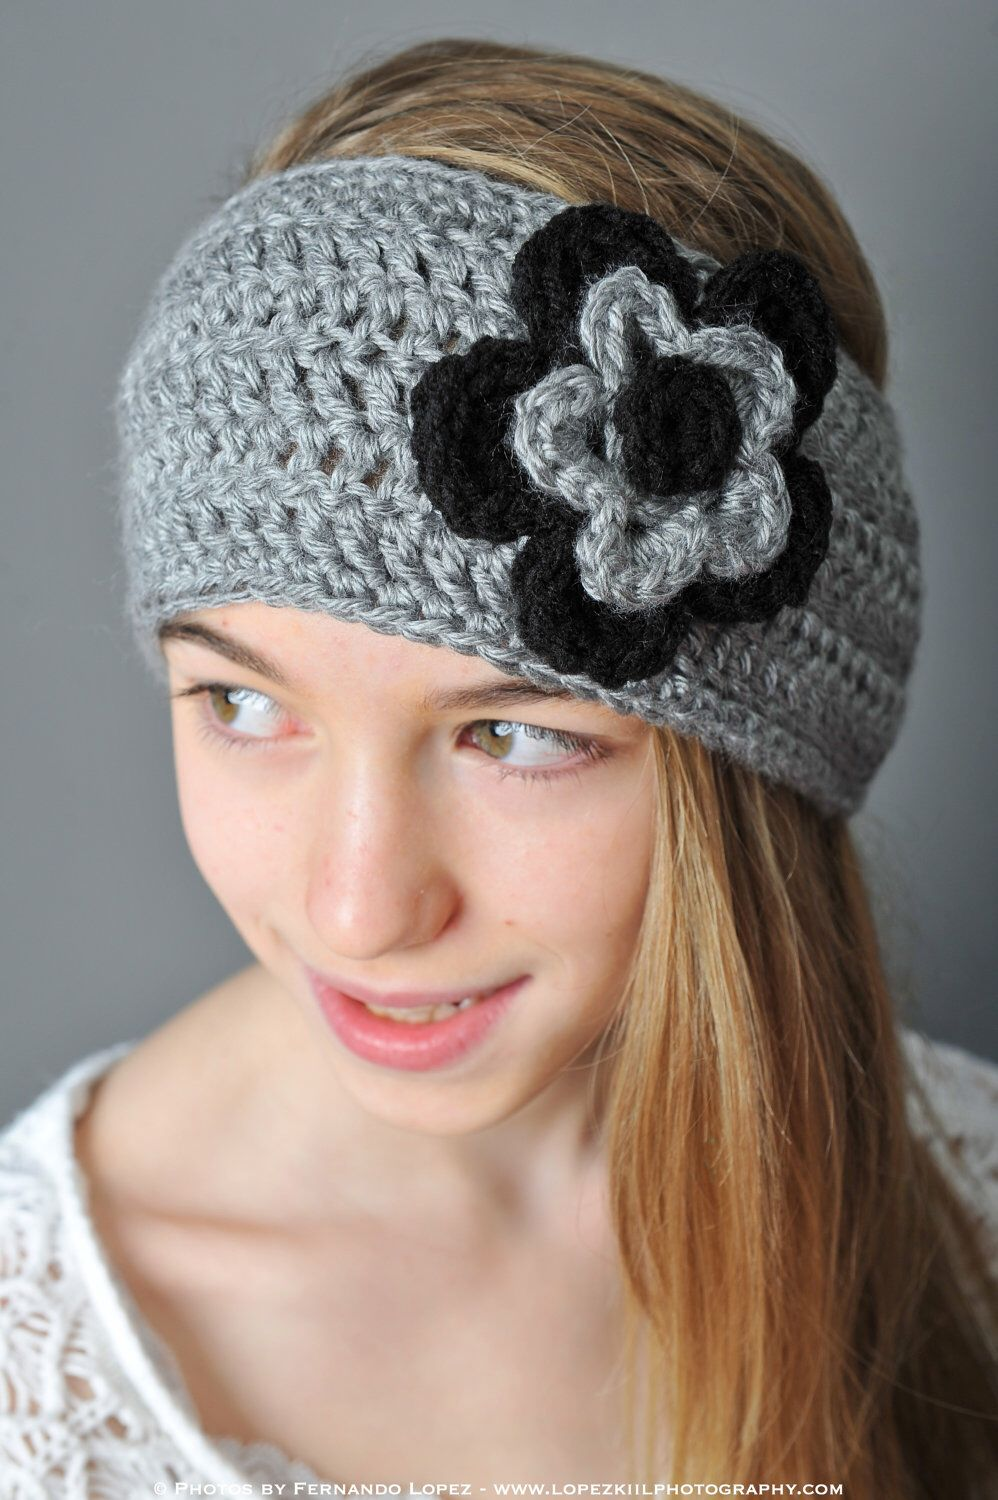 Modern Crochet Patterns For Headbands Ear Warmer Inspiration ...